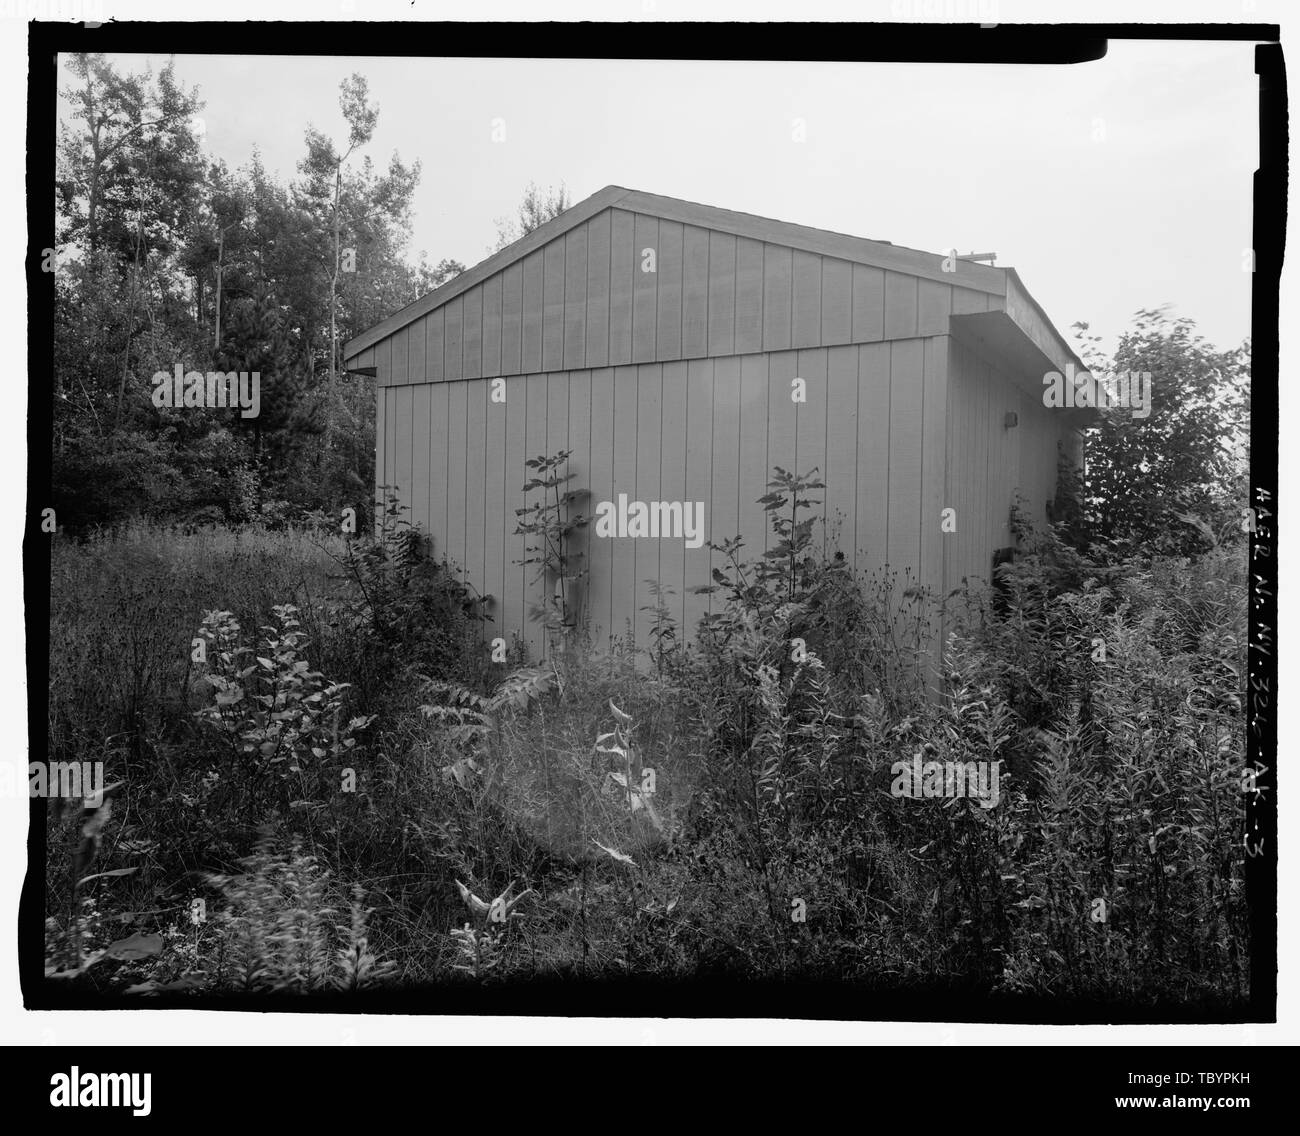 NORTH (SIDE) AND WEST (REAR) ELEVATIONS OF BUILDING. VIEW TO SOUTHEAST.  Plattsburgh Air Force Base, Instrument Landing System (ILS) Middle Marker, Off Perimeter Road at North end of Runway, Plattsburgh, Clinton County, NY - Stock Image